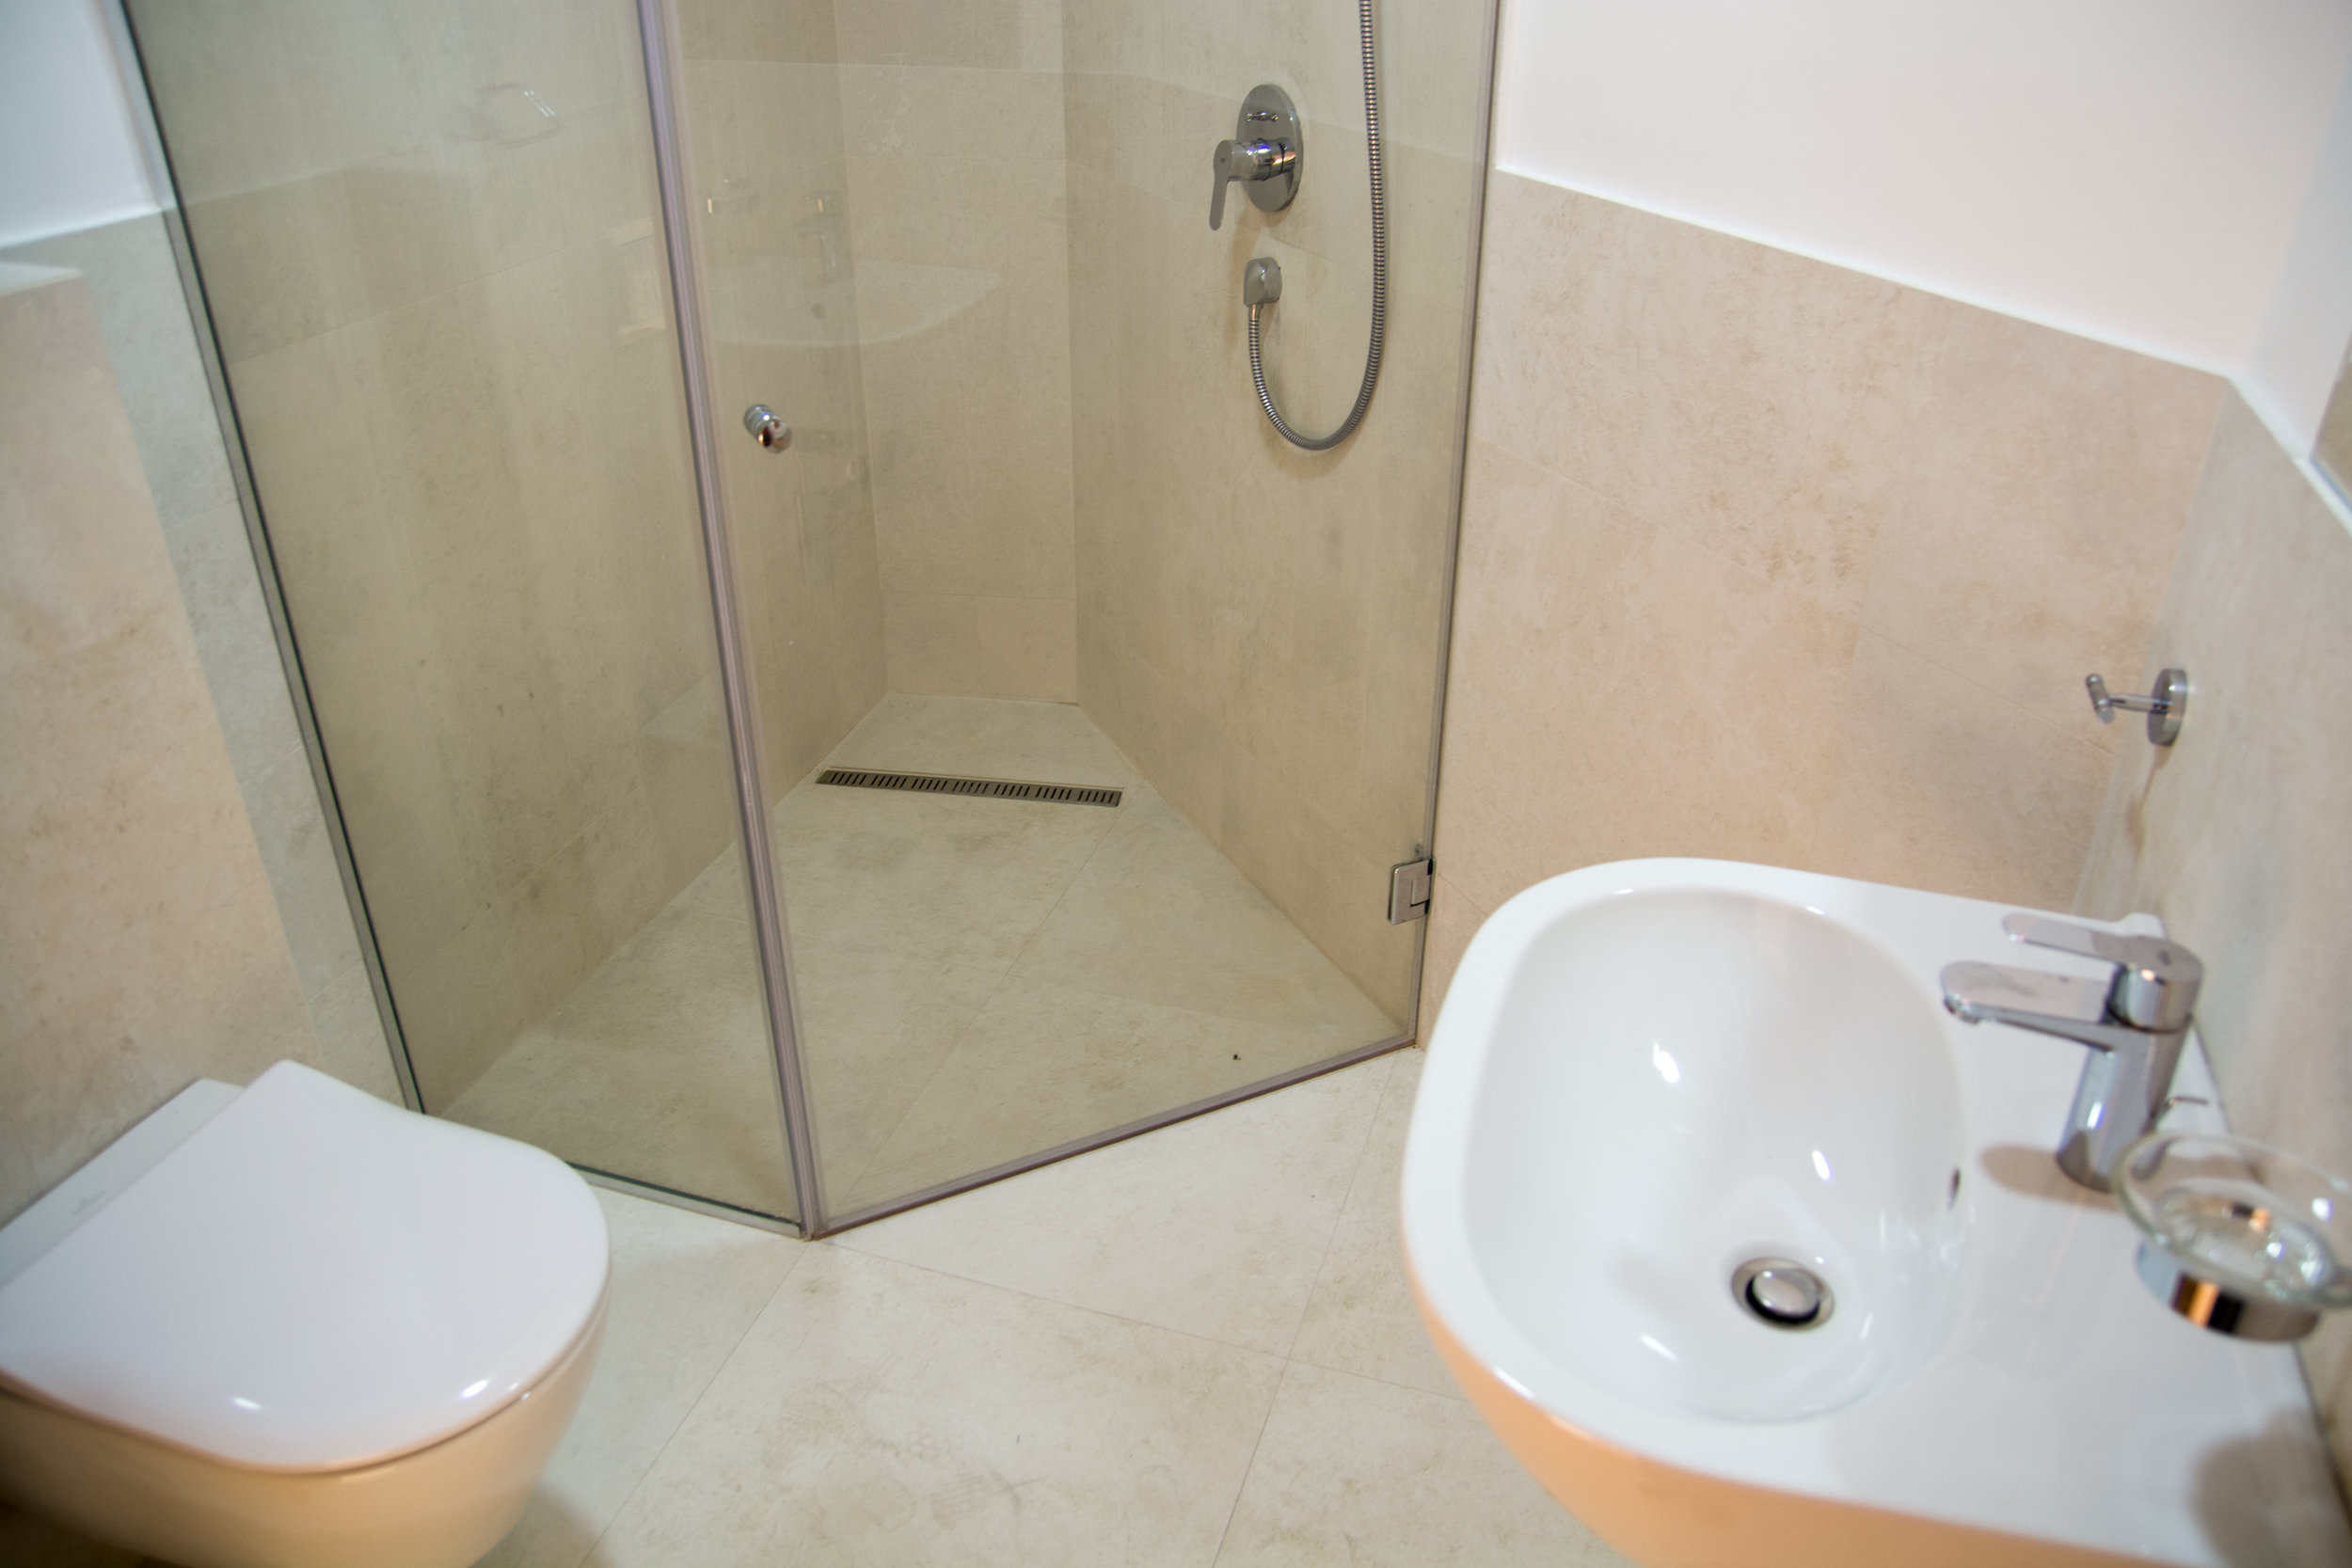 tivat-two-bedroom-apartment-for-sale-property-in-montenegro (7).jpg